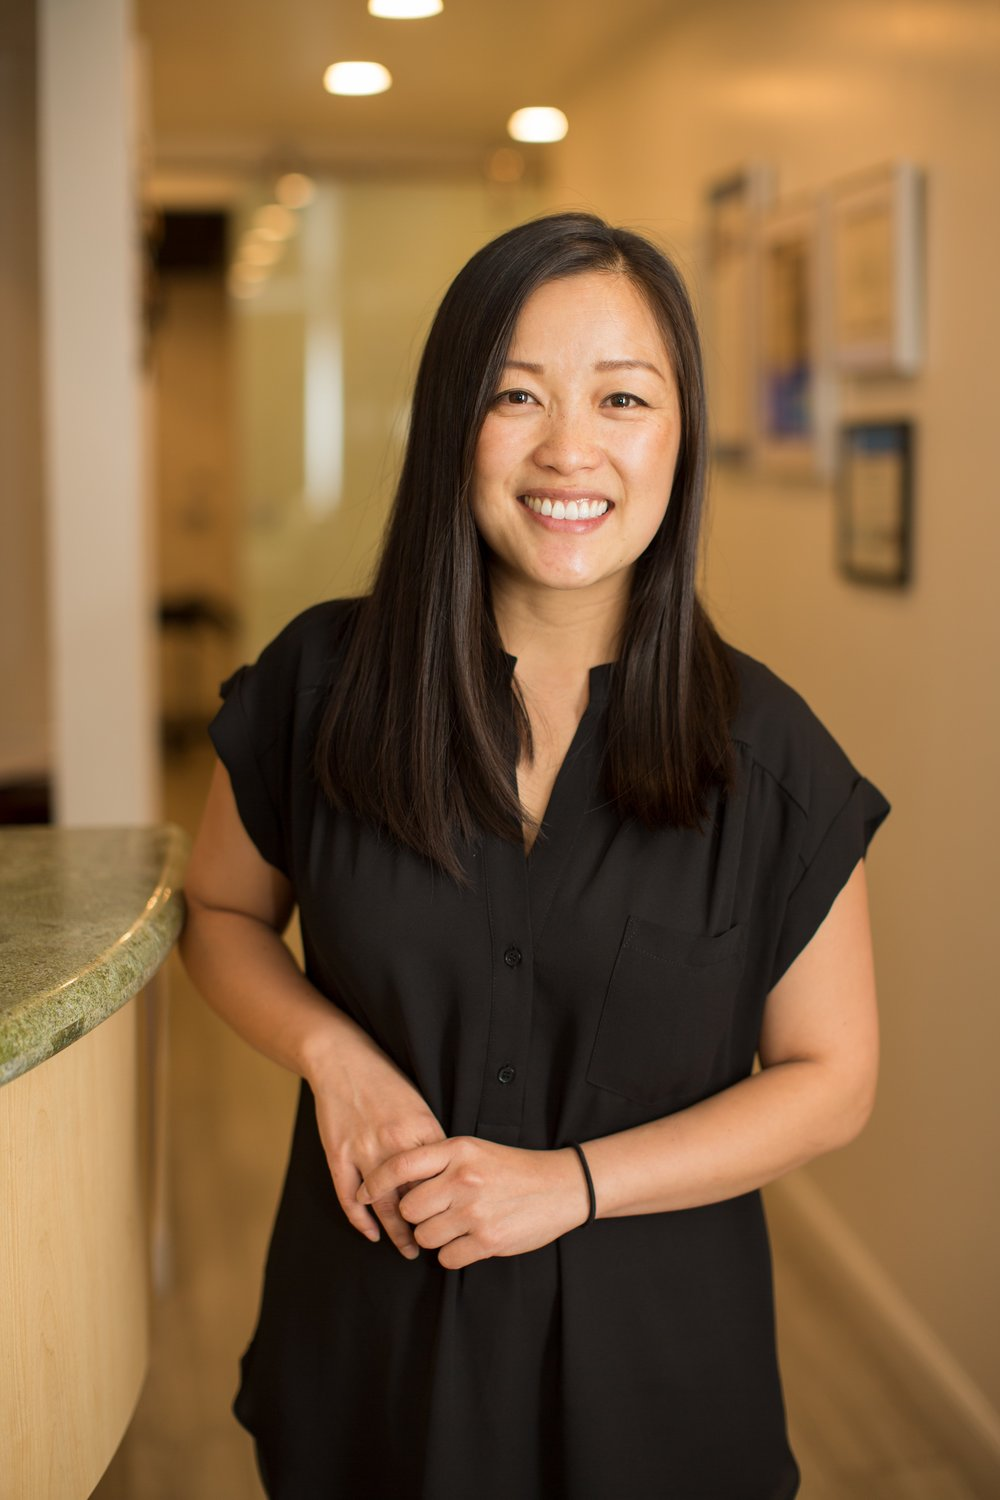 Huong Van, Registered Dental Hygienist at Nice Teeth Dental Hygienist